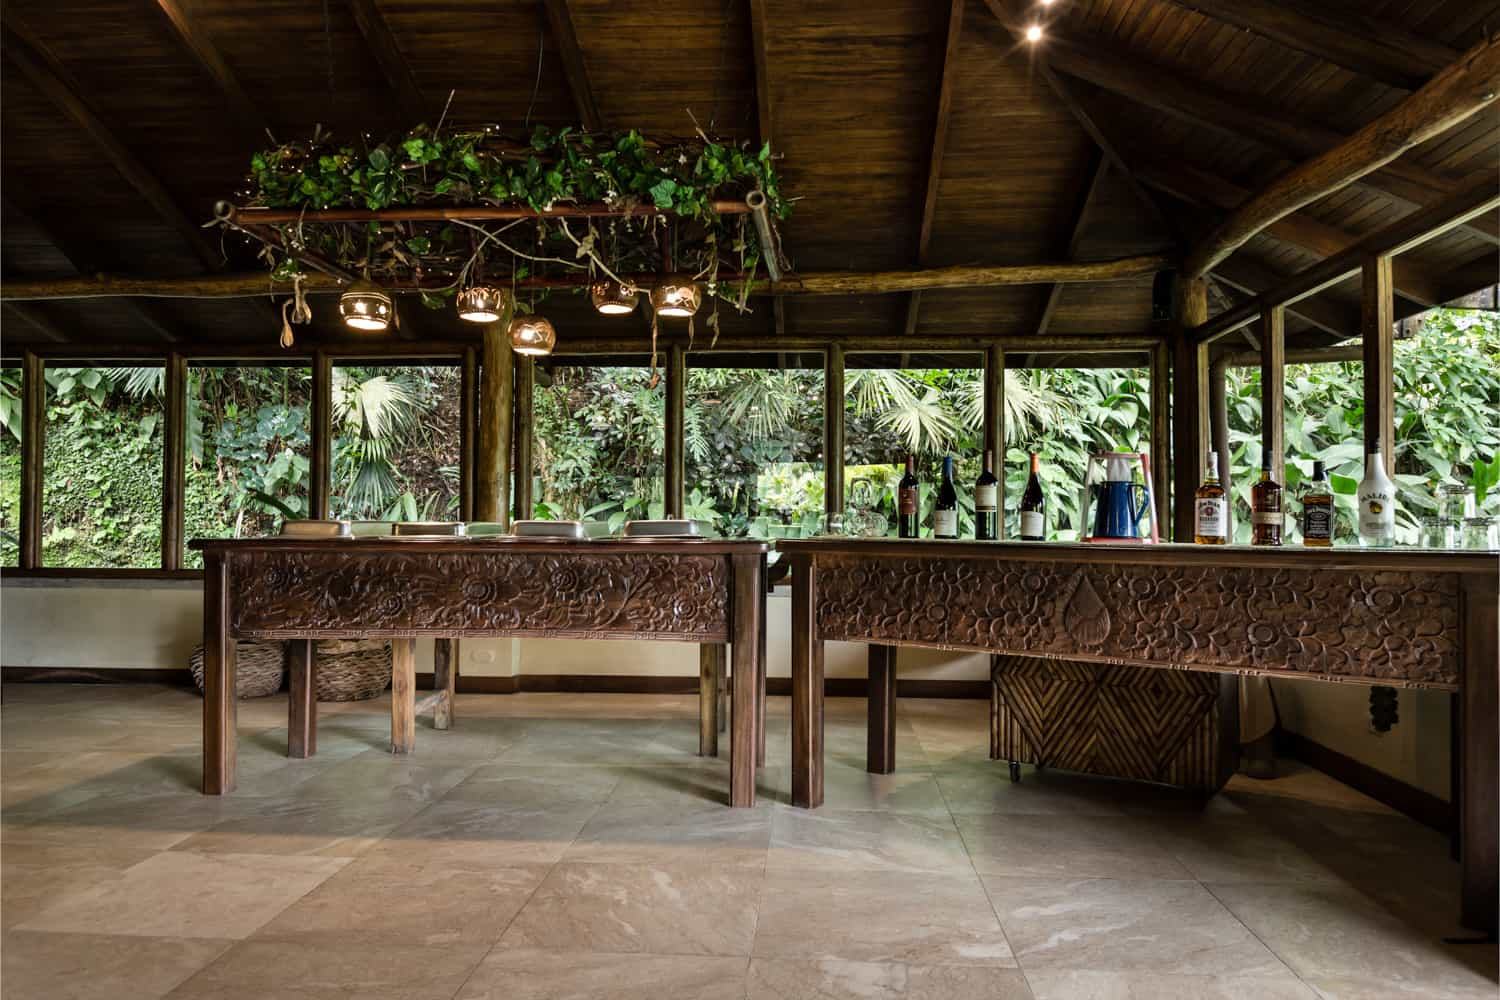 Open area for dancing and buffet for wedding celebration in La Fortuna.